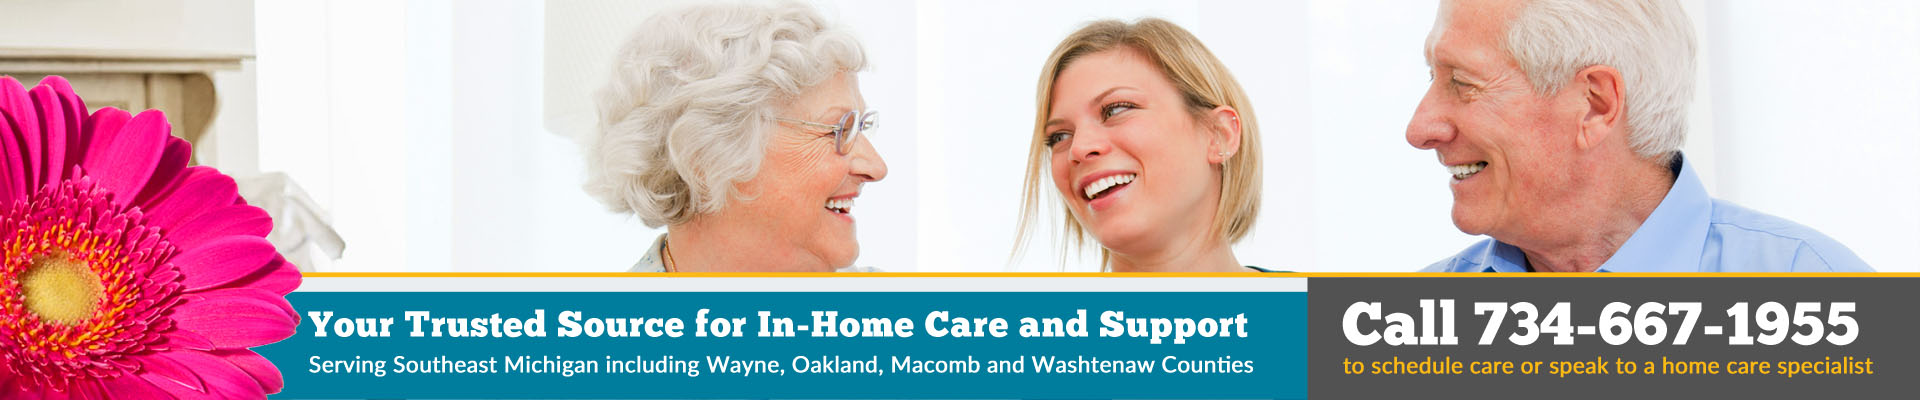 best home care agency in southeast michigan